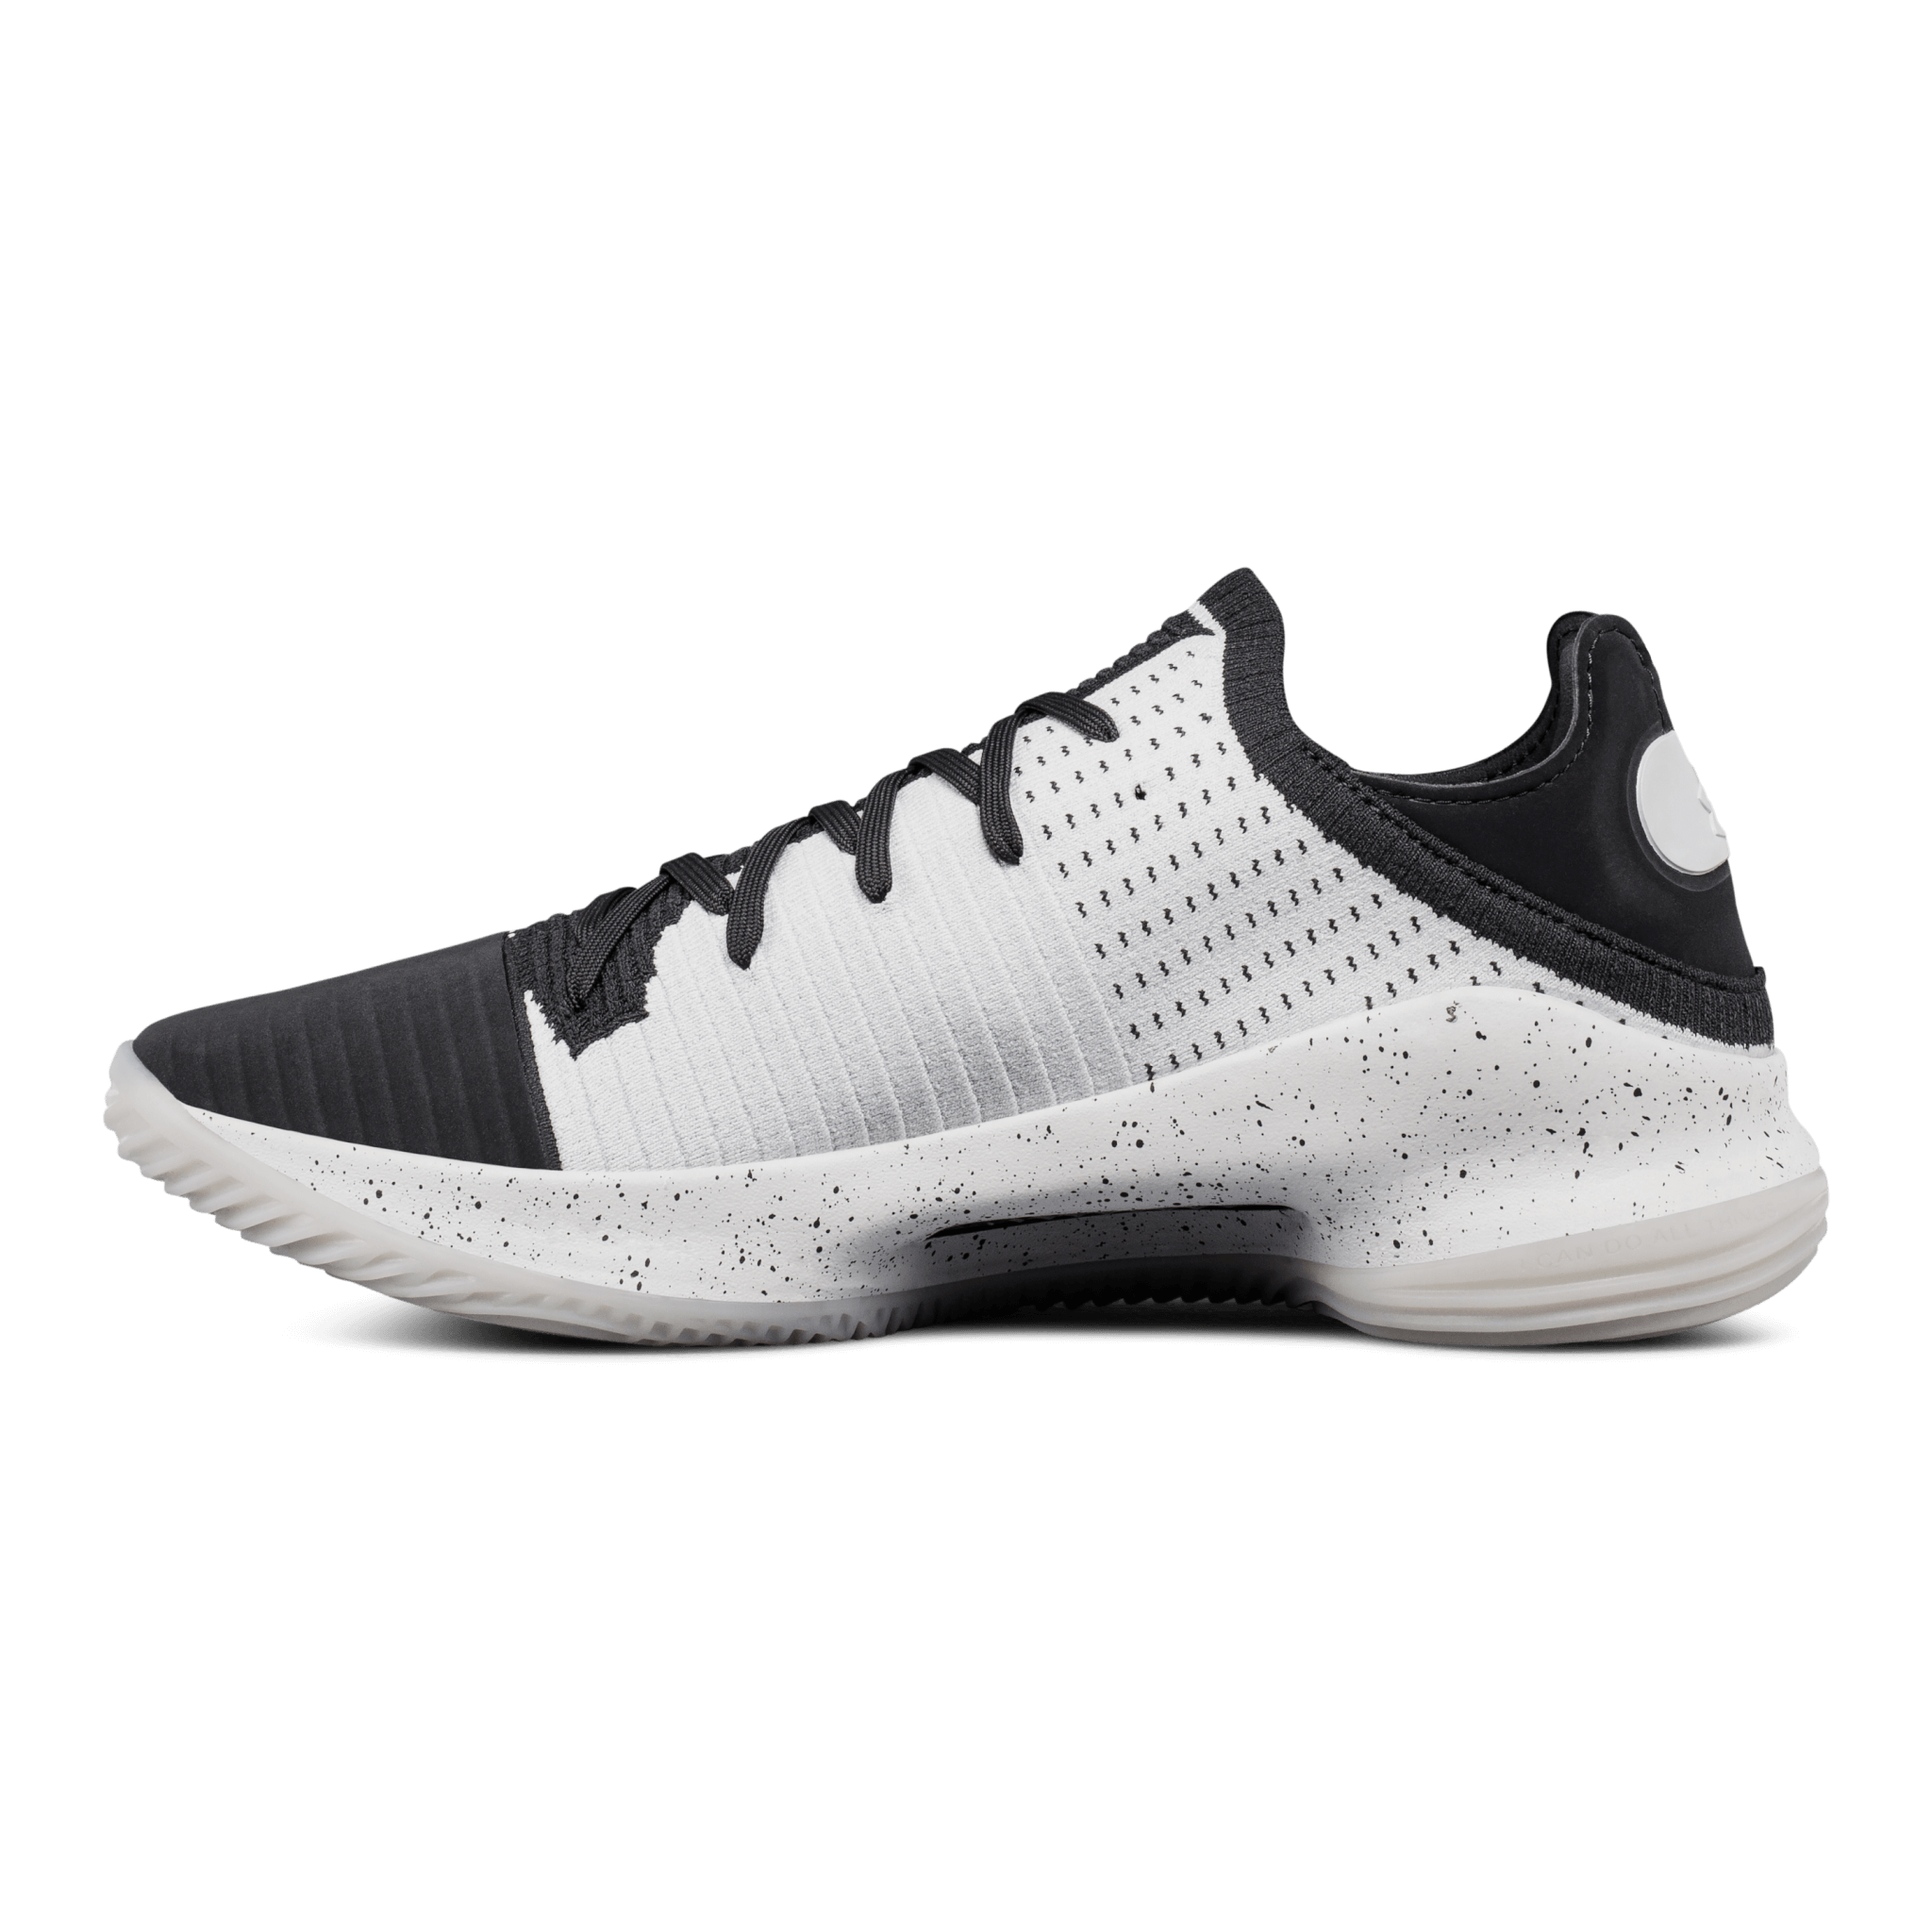 b059115cb73b Under Armour Curry 4 Low Performance Review